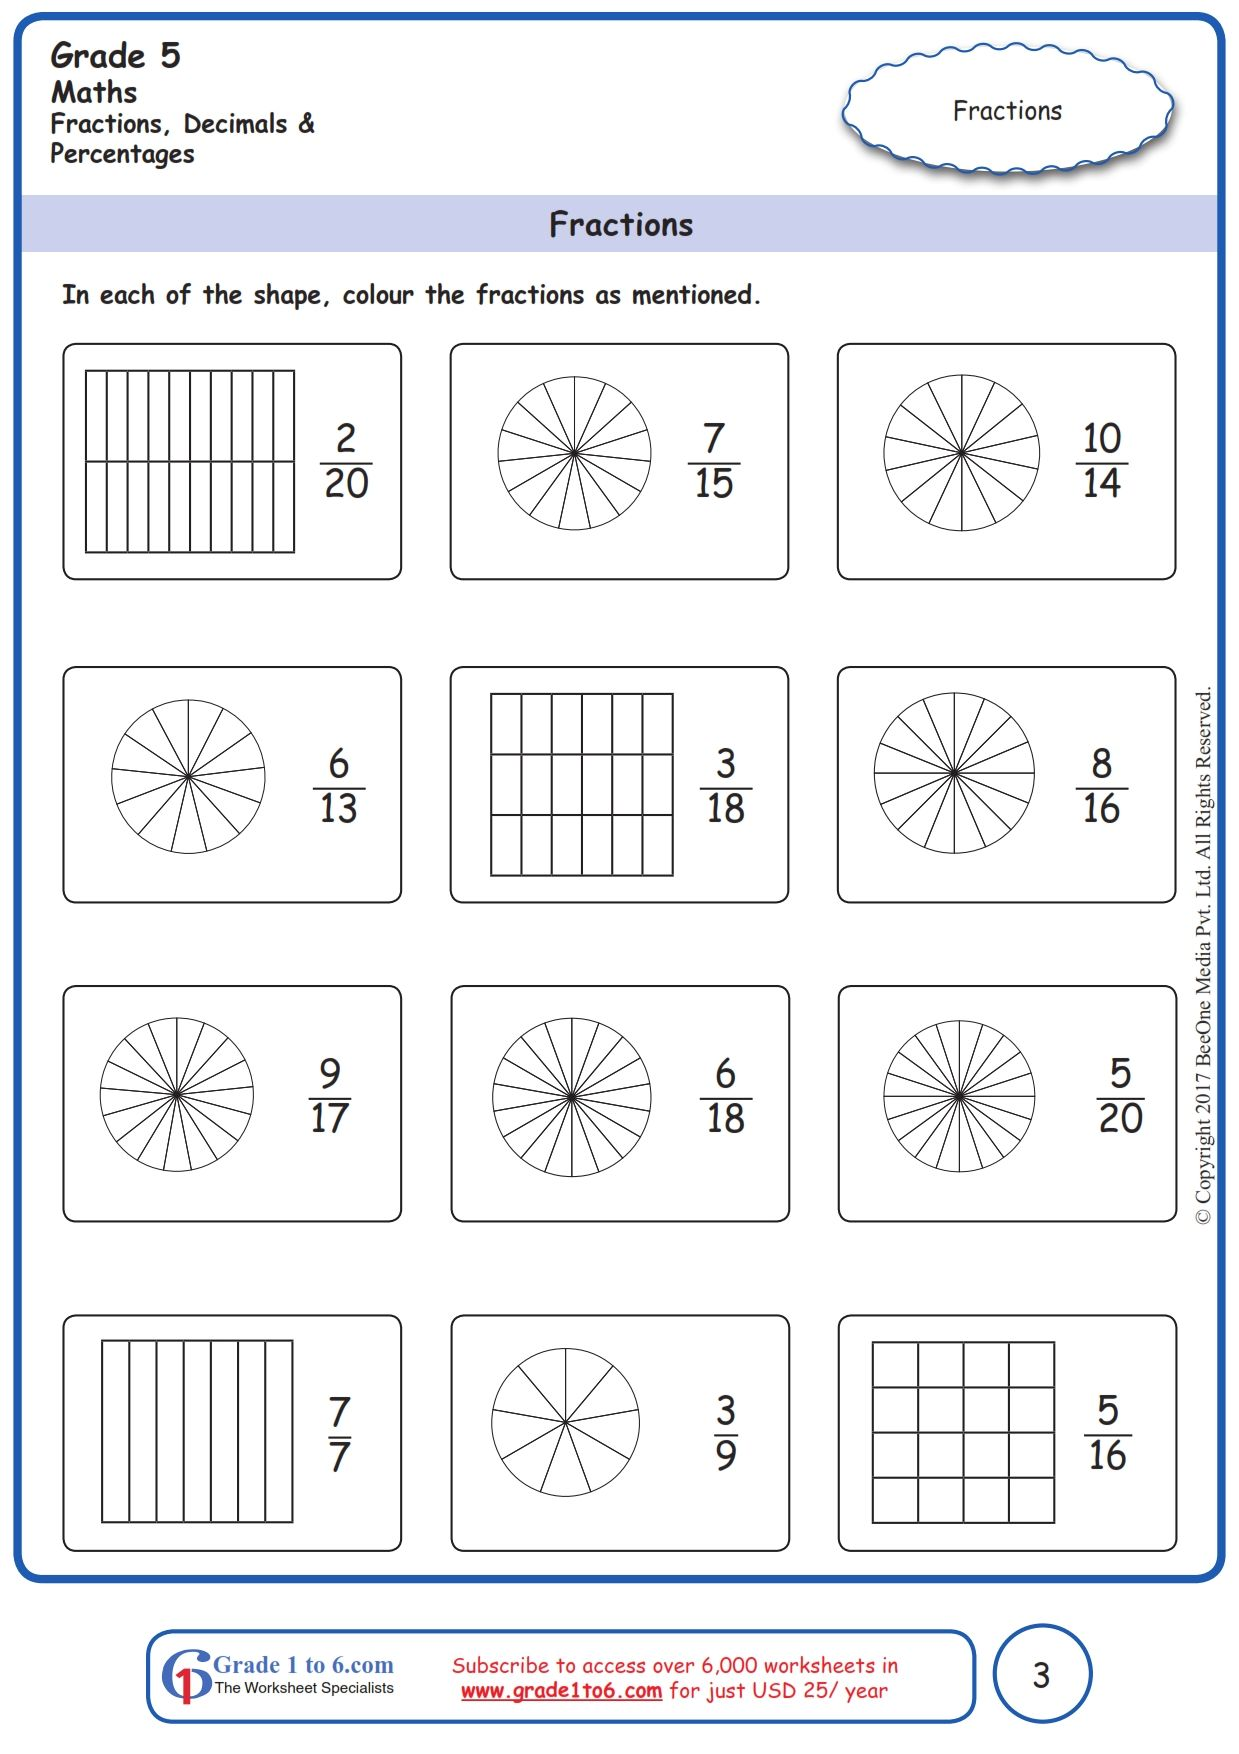 Pin On Grade 5 Math Worksheets Pyp Cbse Icse Common Core